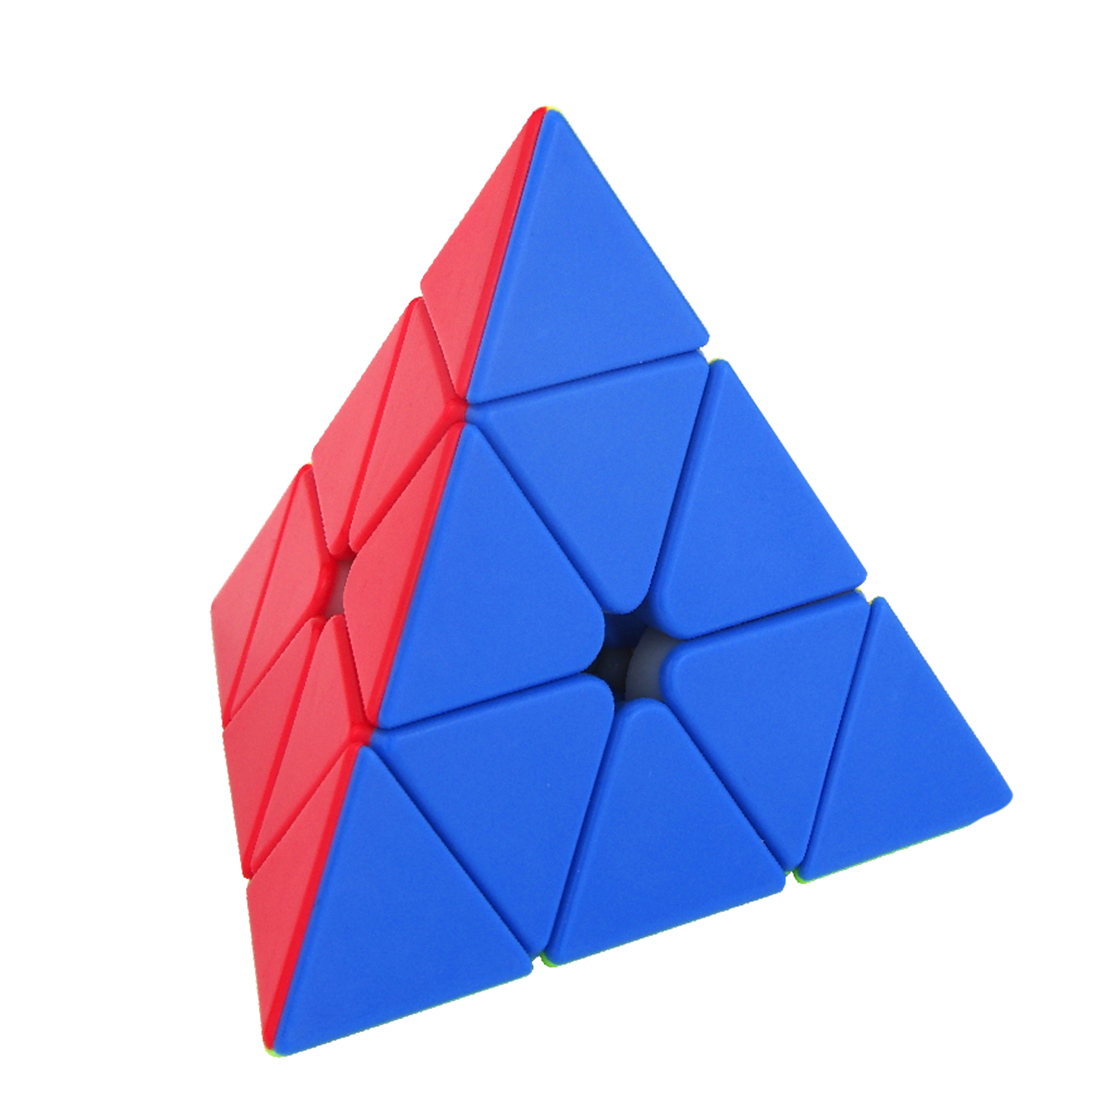 MoYu Triangle Pyramid Pyraminx Magic Cube Puzzle Cubes Twist Cubo Square Puzzle Gifts Educational Toys for Childre yj yongjun moyu yuhu megaminx magic cube speed puzzle cubes kids toys educational toy